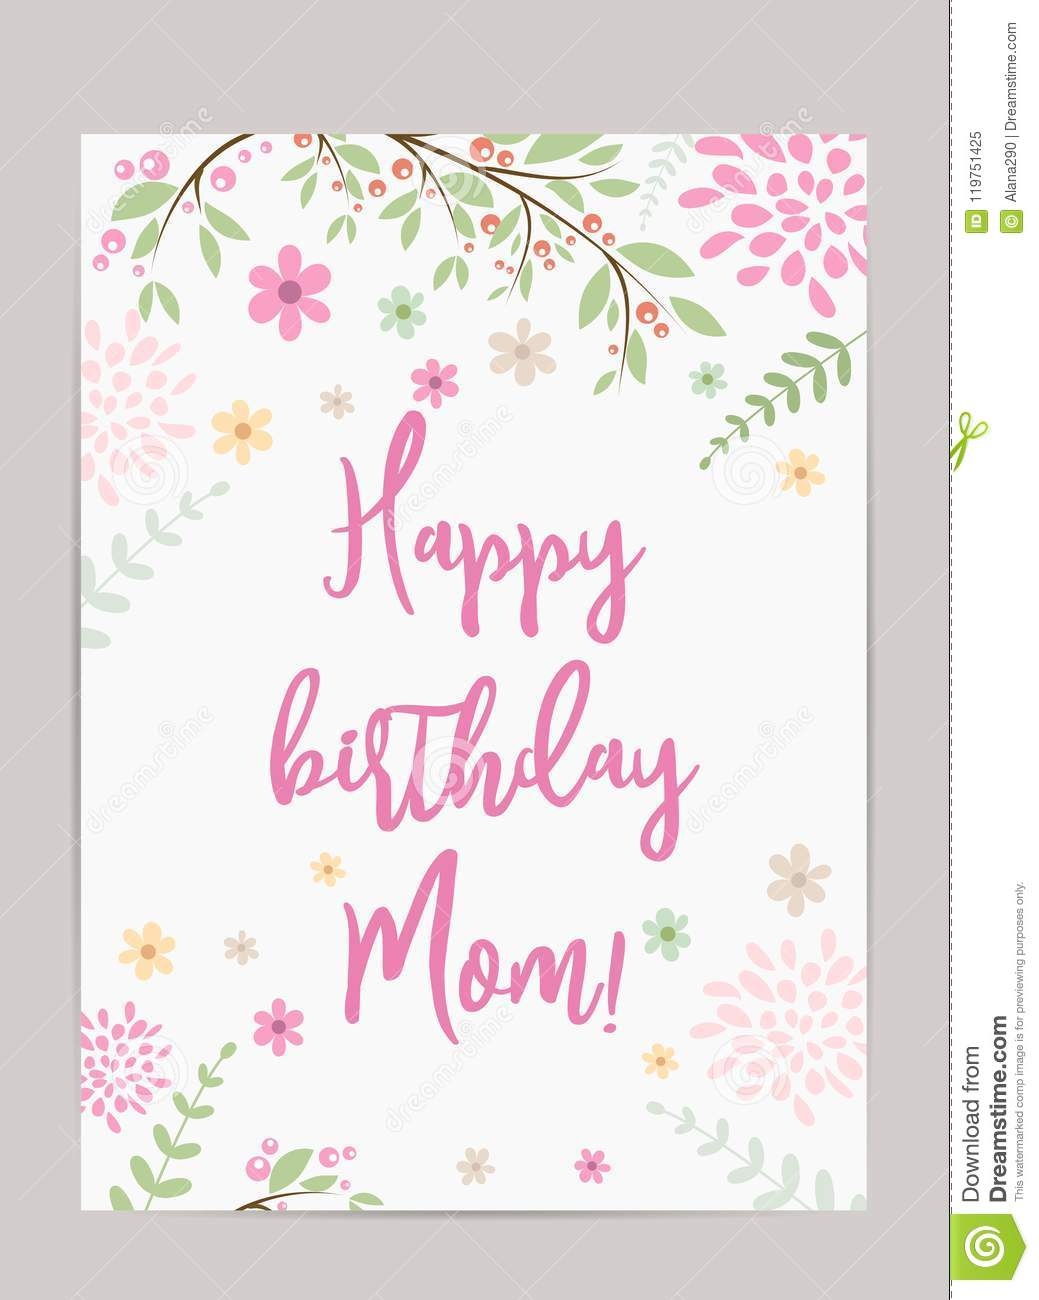 Happy Birthday Mom Holiday Background Template For Greeting Card Pretty Old Fashioned With Abstract Flowers And Floral Elements